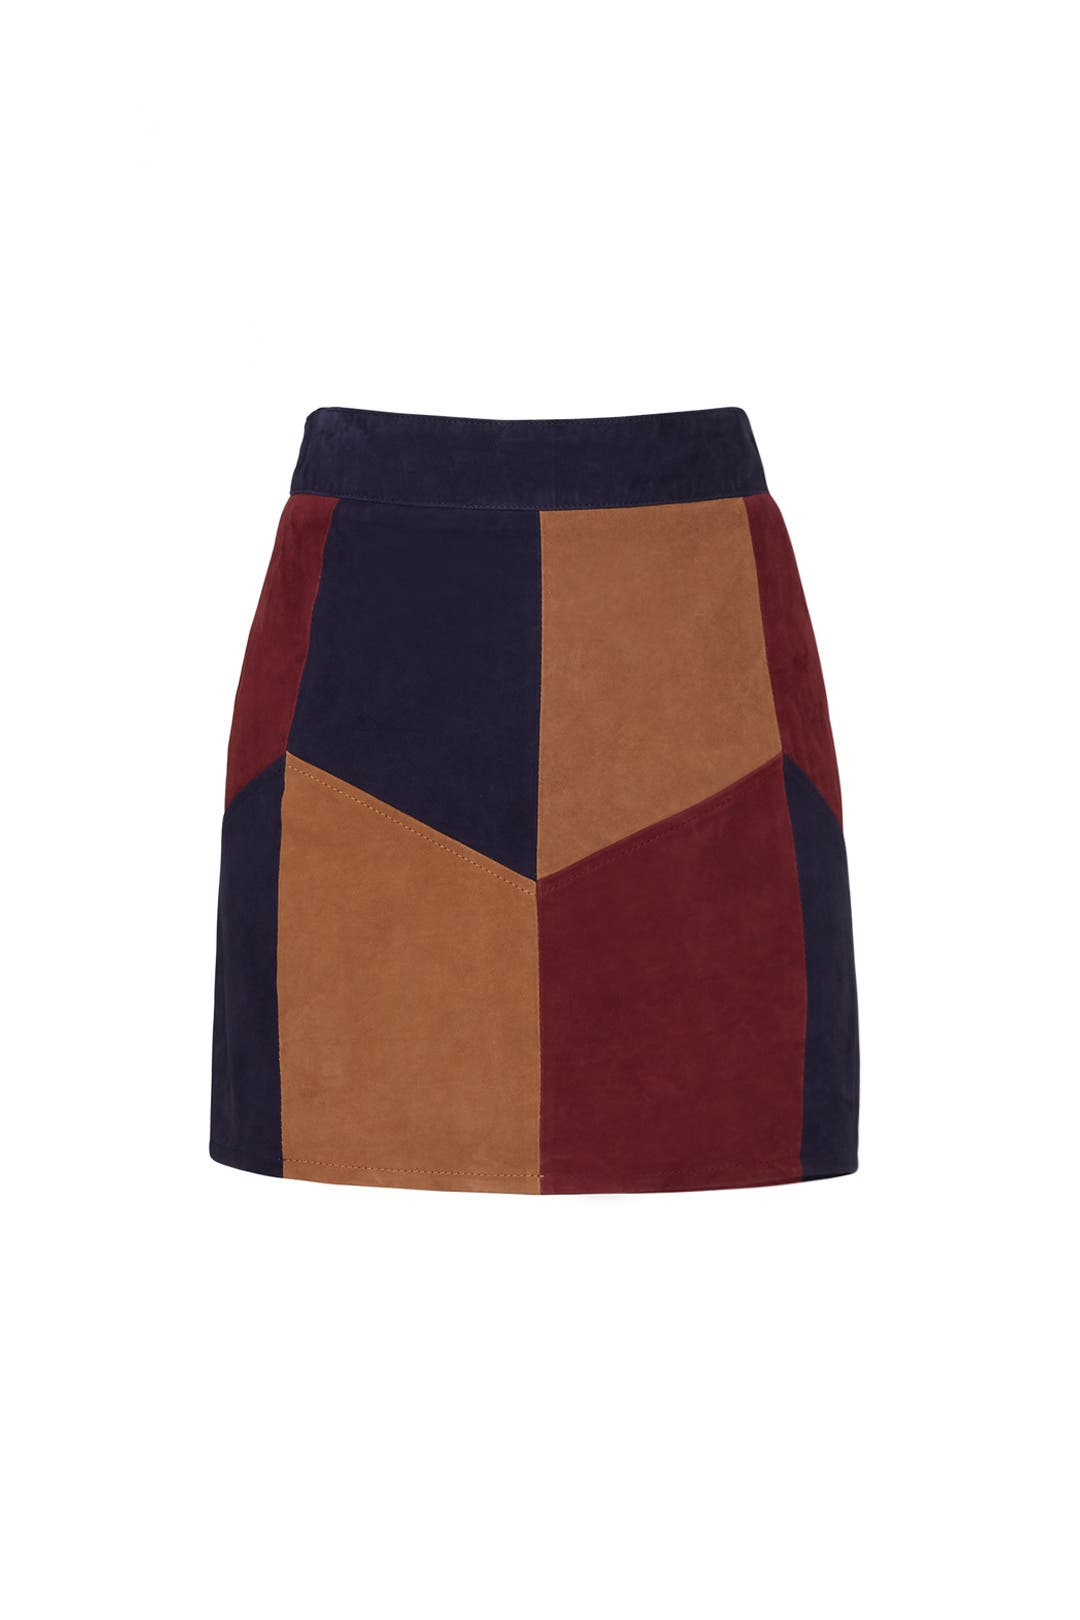 Retro Suede Patchwork Skirt by LAMARQUE